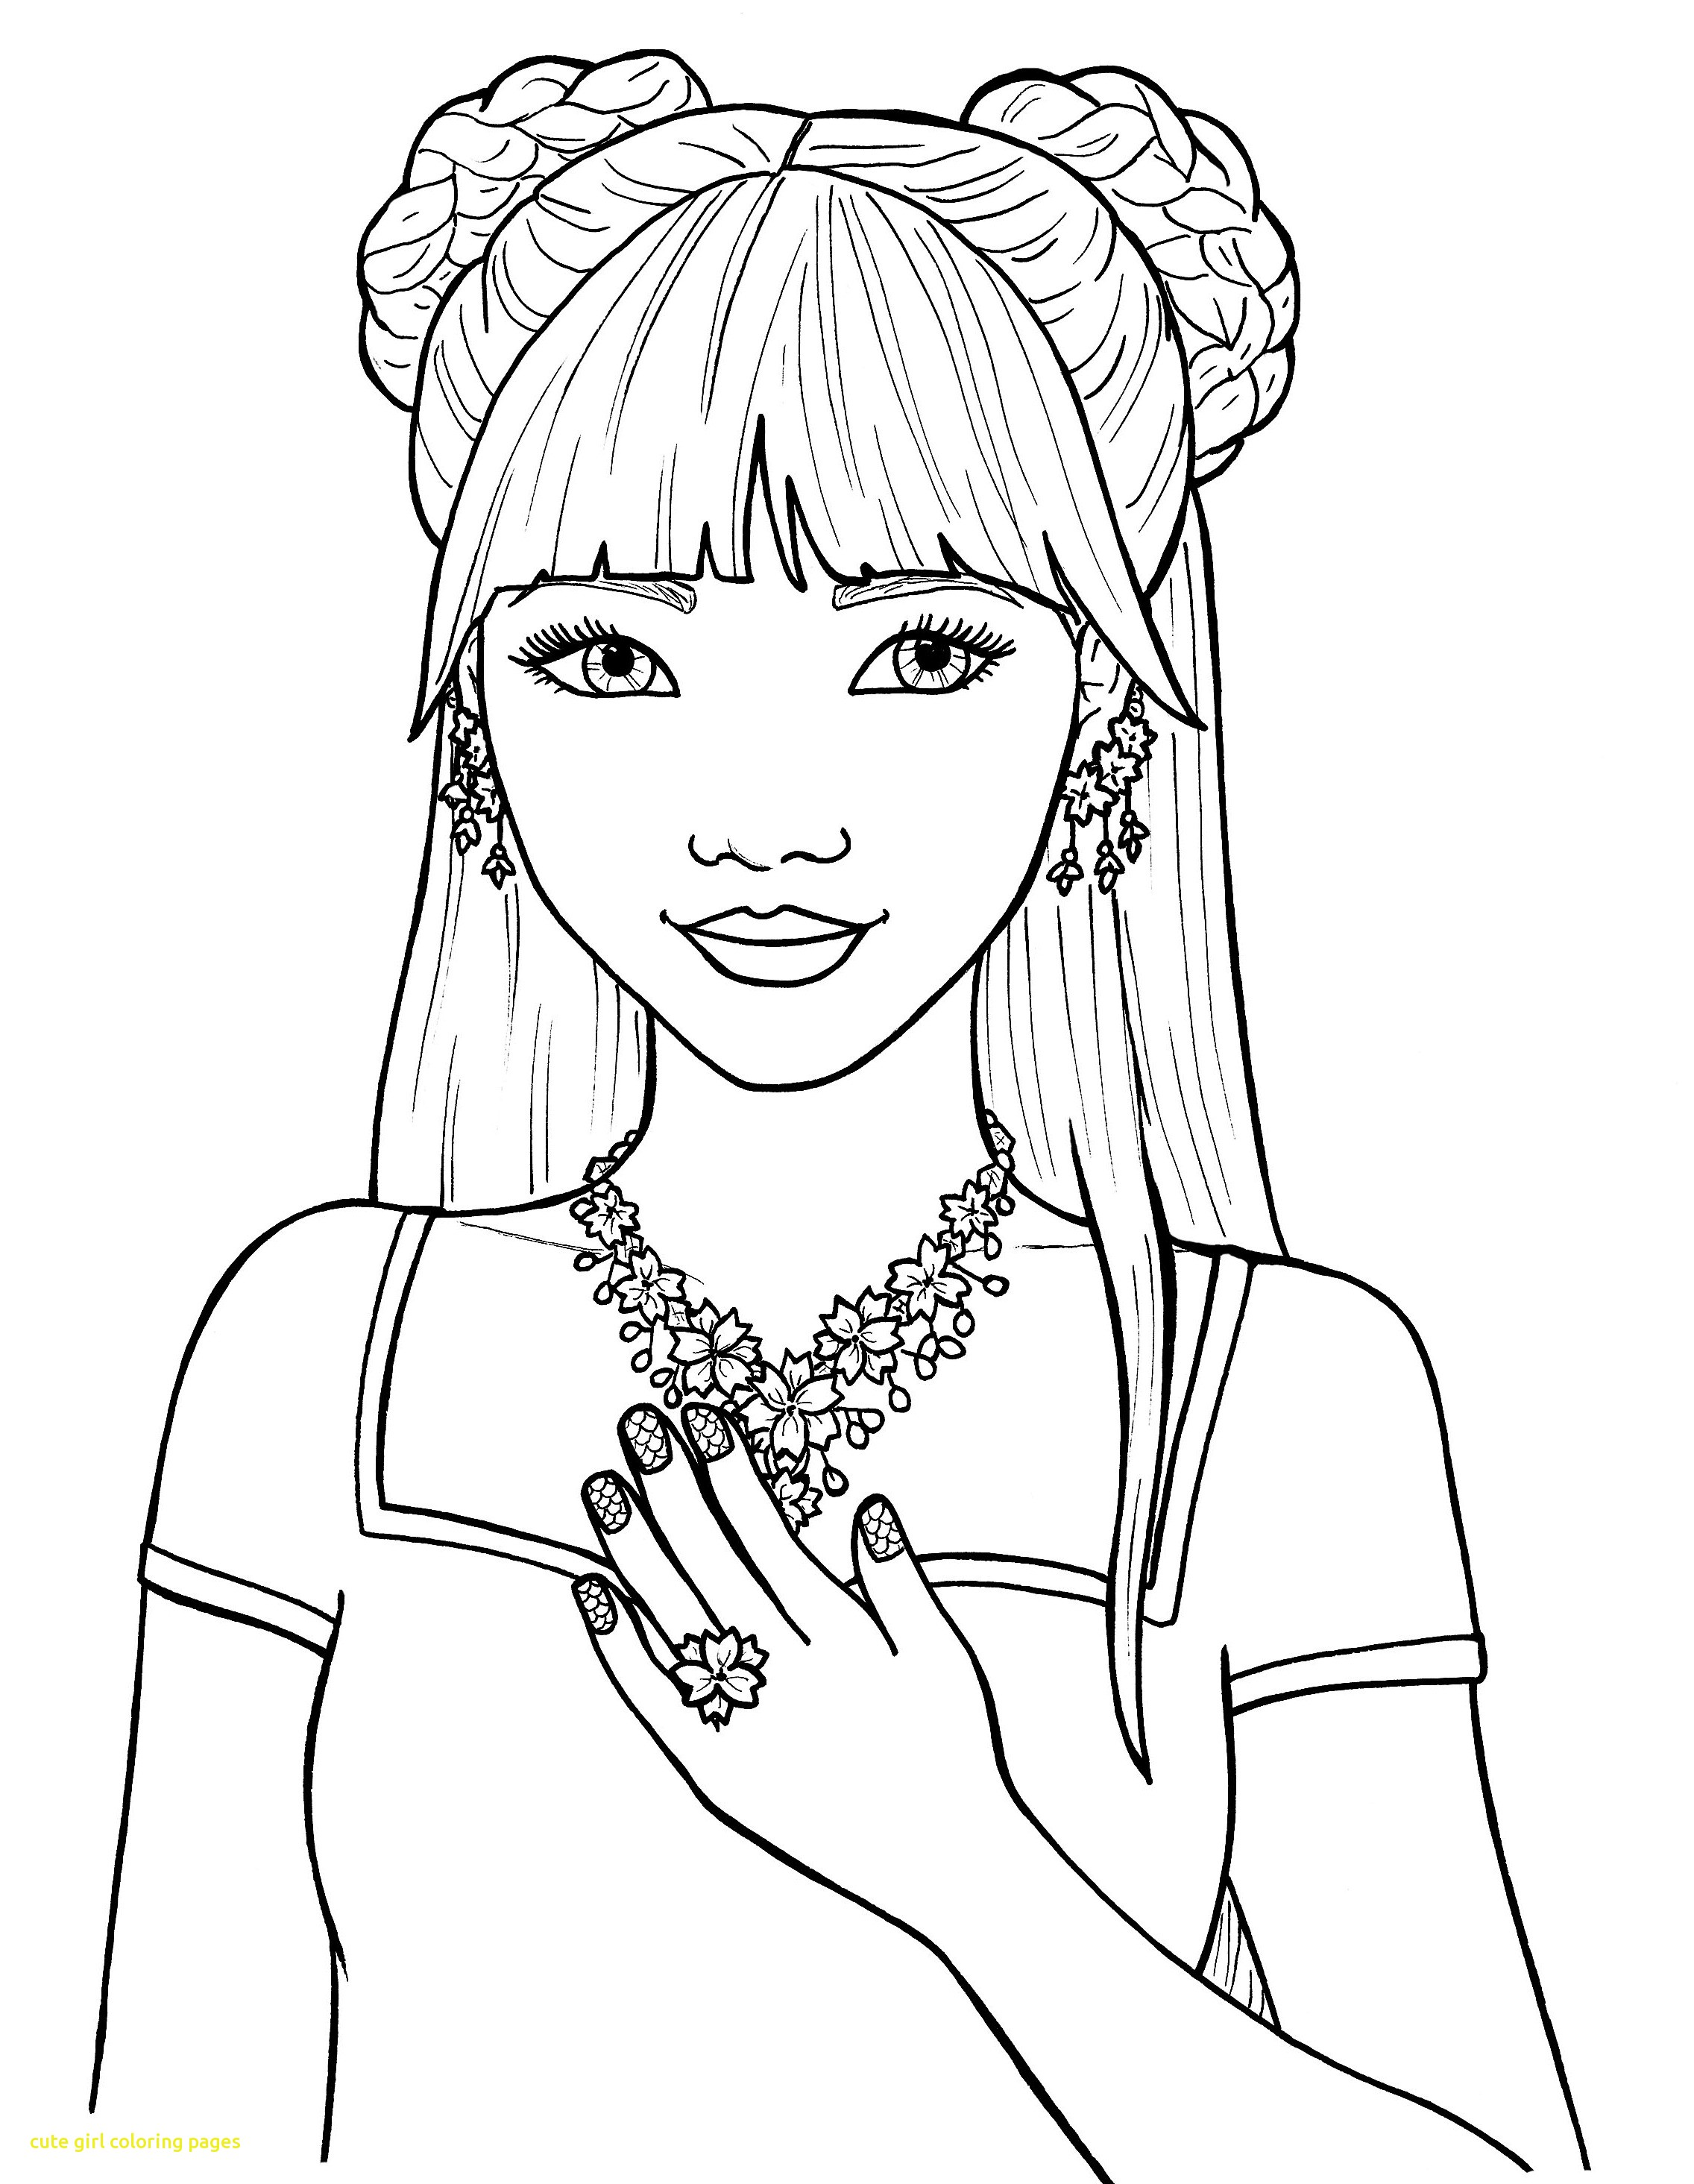 coloring pages women women coloring download women coloring for free 2019 coloring pages women